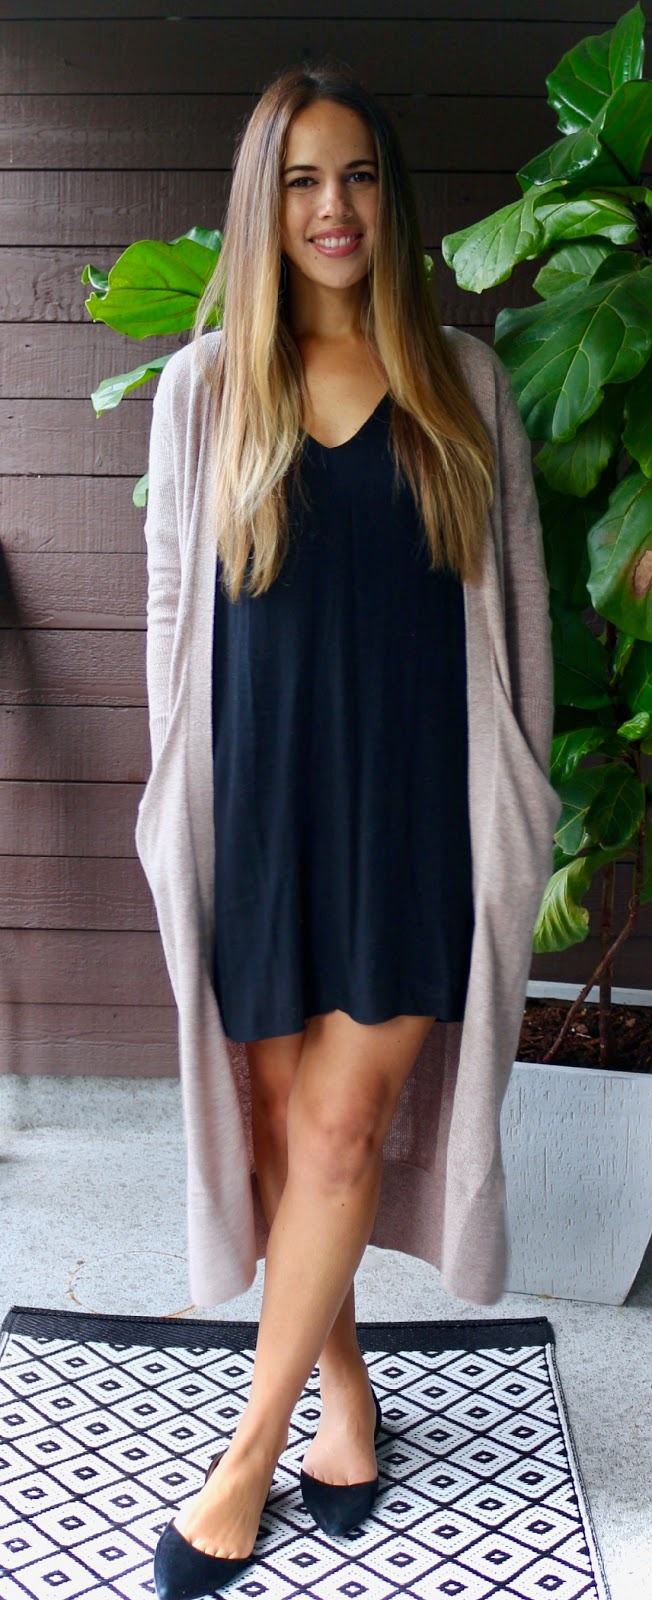 Jules in Flats - Super Long Cardigan with Black Dress (Business Casual Fall Workwear on a Budget)